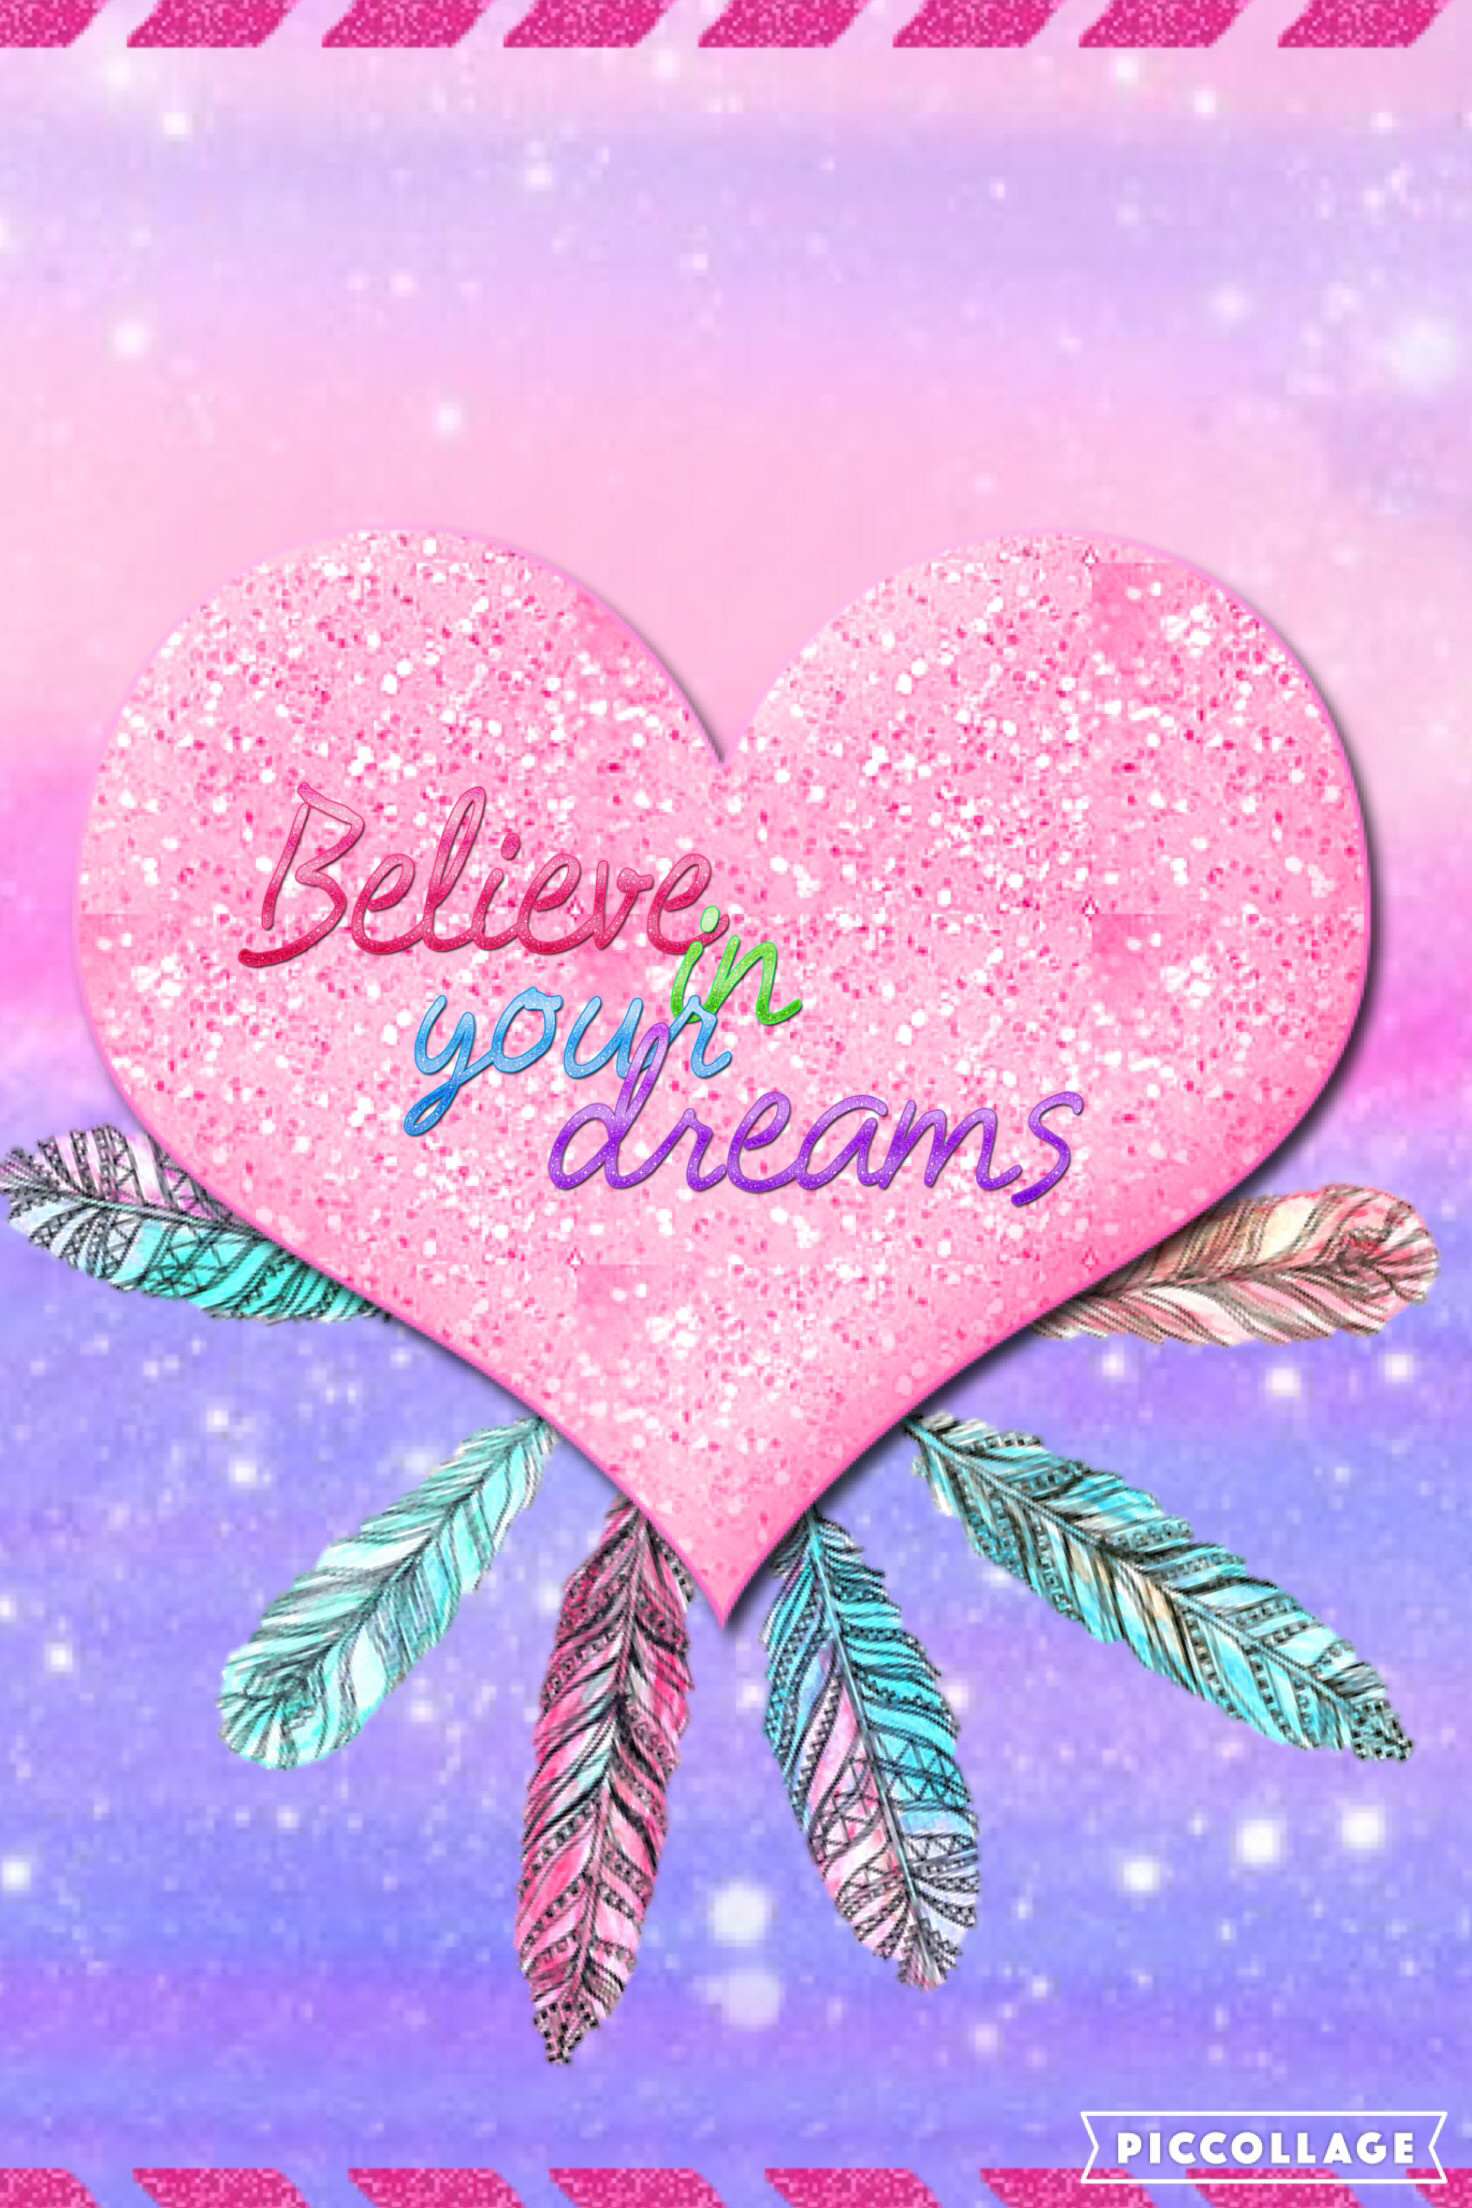 Girly Heart Inspirationby Rosely A Girly Wallpaper For Samsung Tablet 1472x2208 Wallpaper Teahub Io